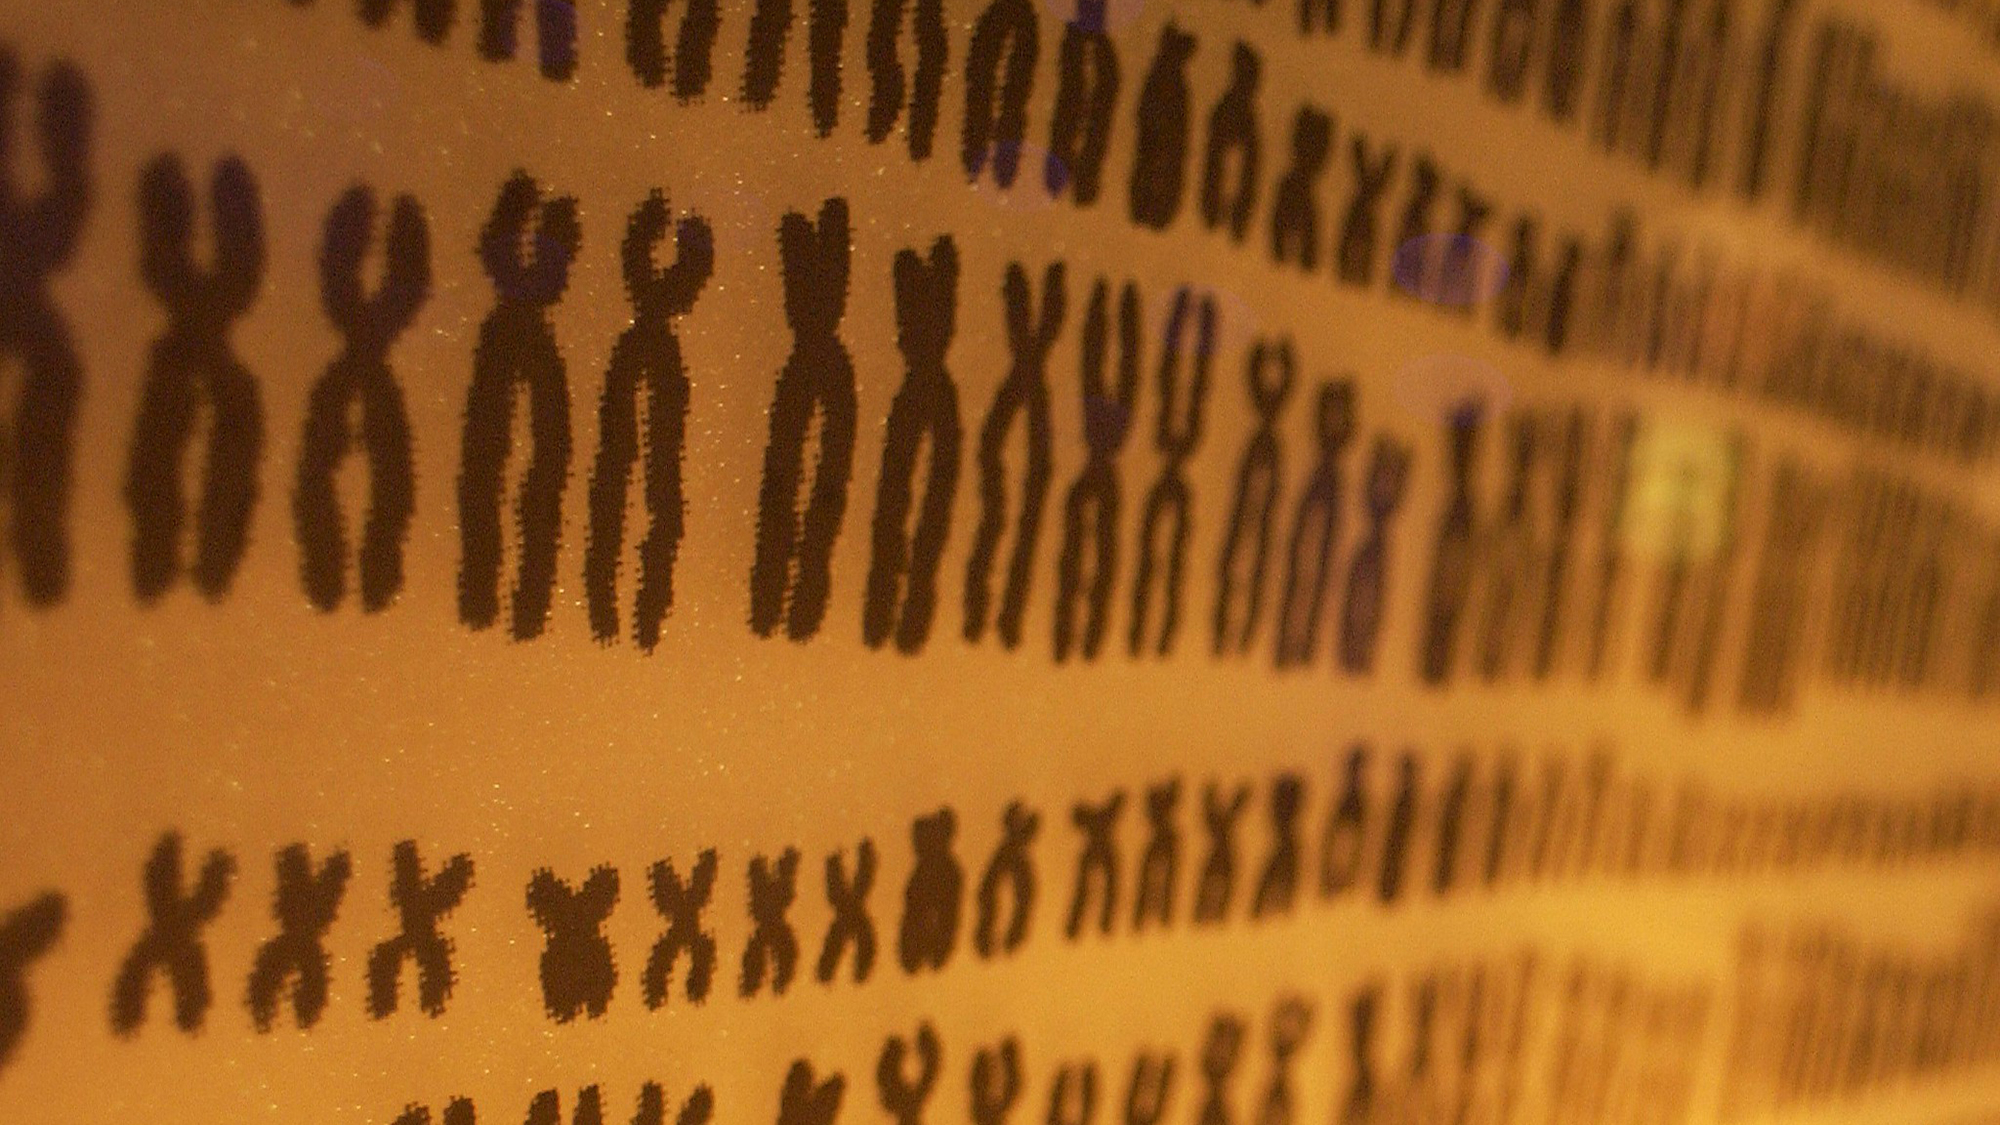 Women have two copies of chromosome X, while men have one X and one Y. This little Y chromosome holds the key to why men have higher risk of cancer. Photo by Kate Whitley CC-BY.